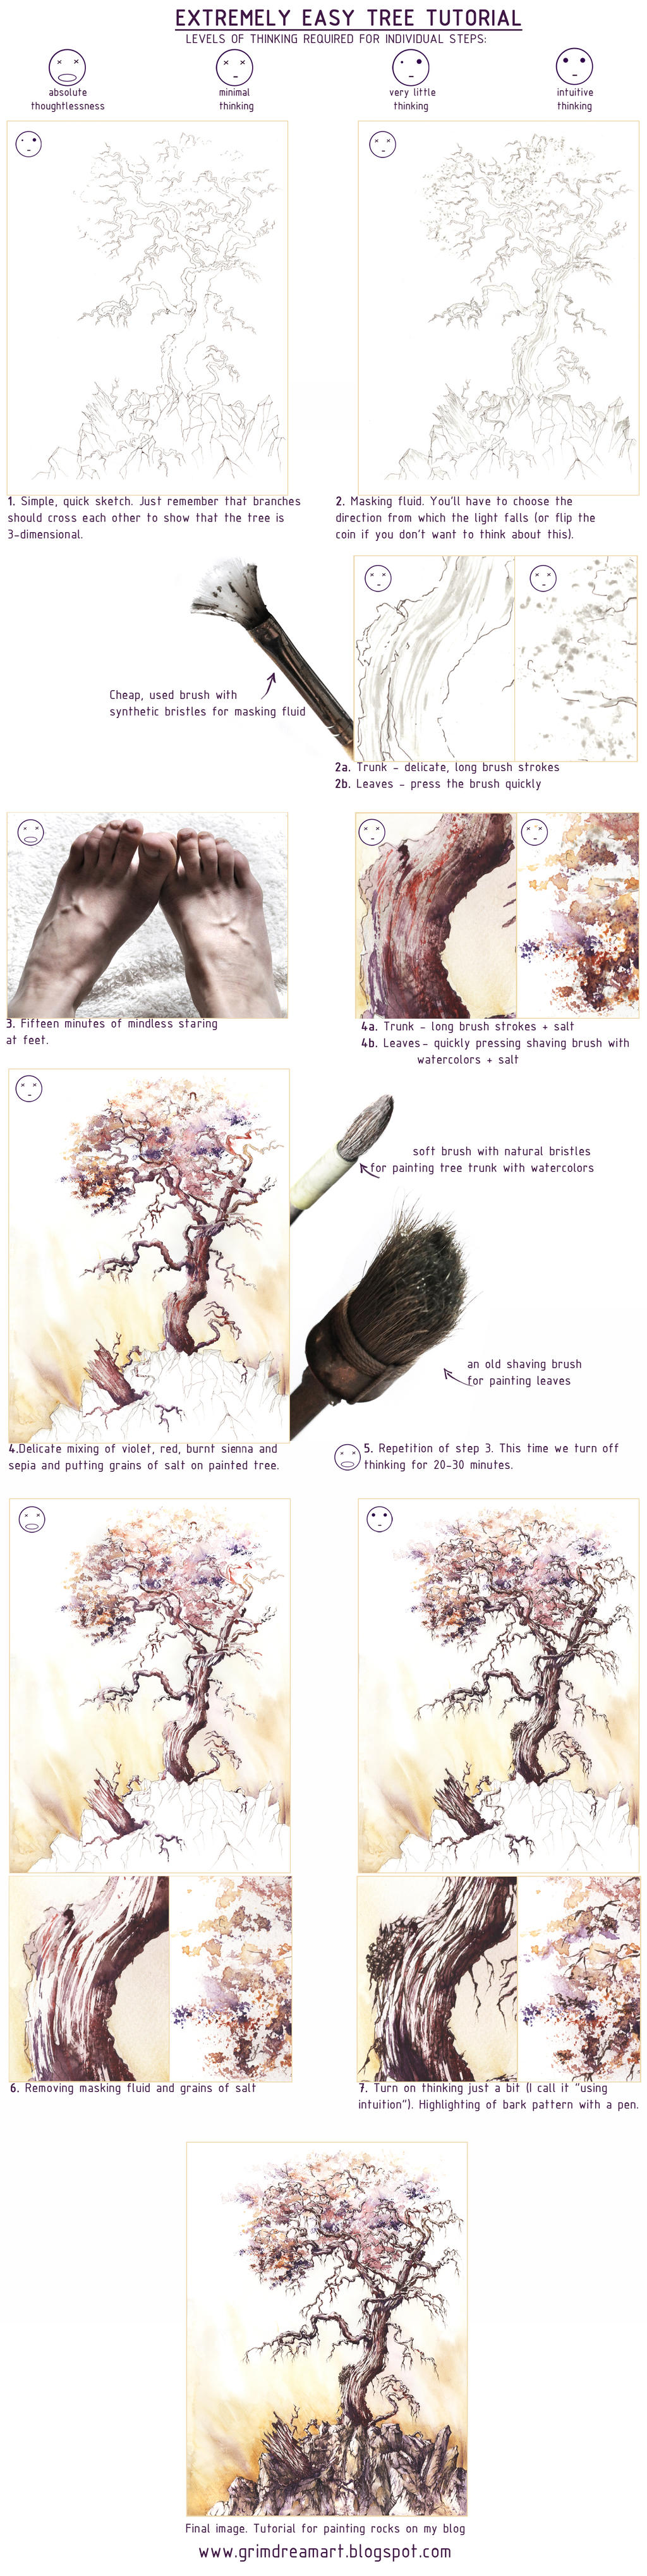 Extremely Easy Tree Tutorial by GrimDreamArt